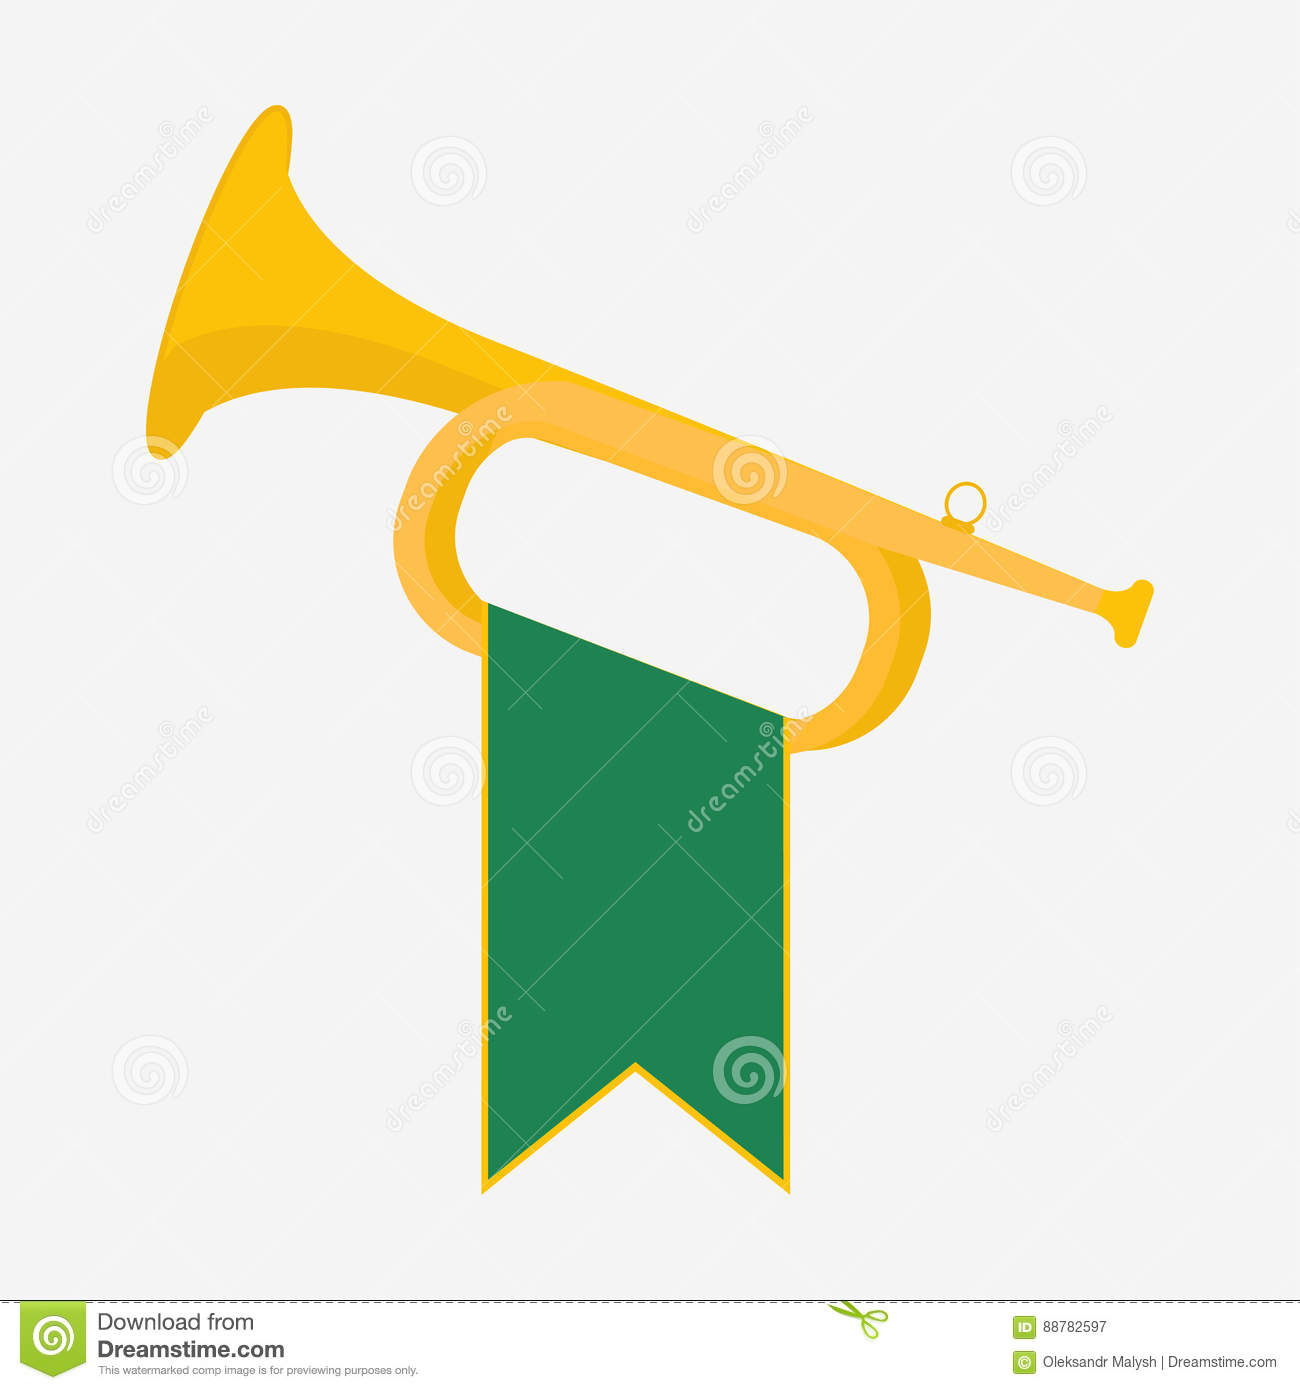 Trumpet with green